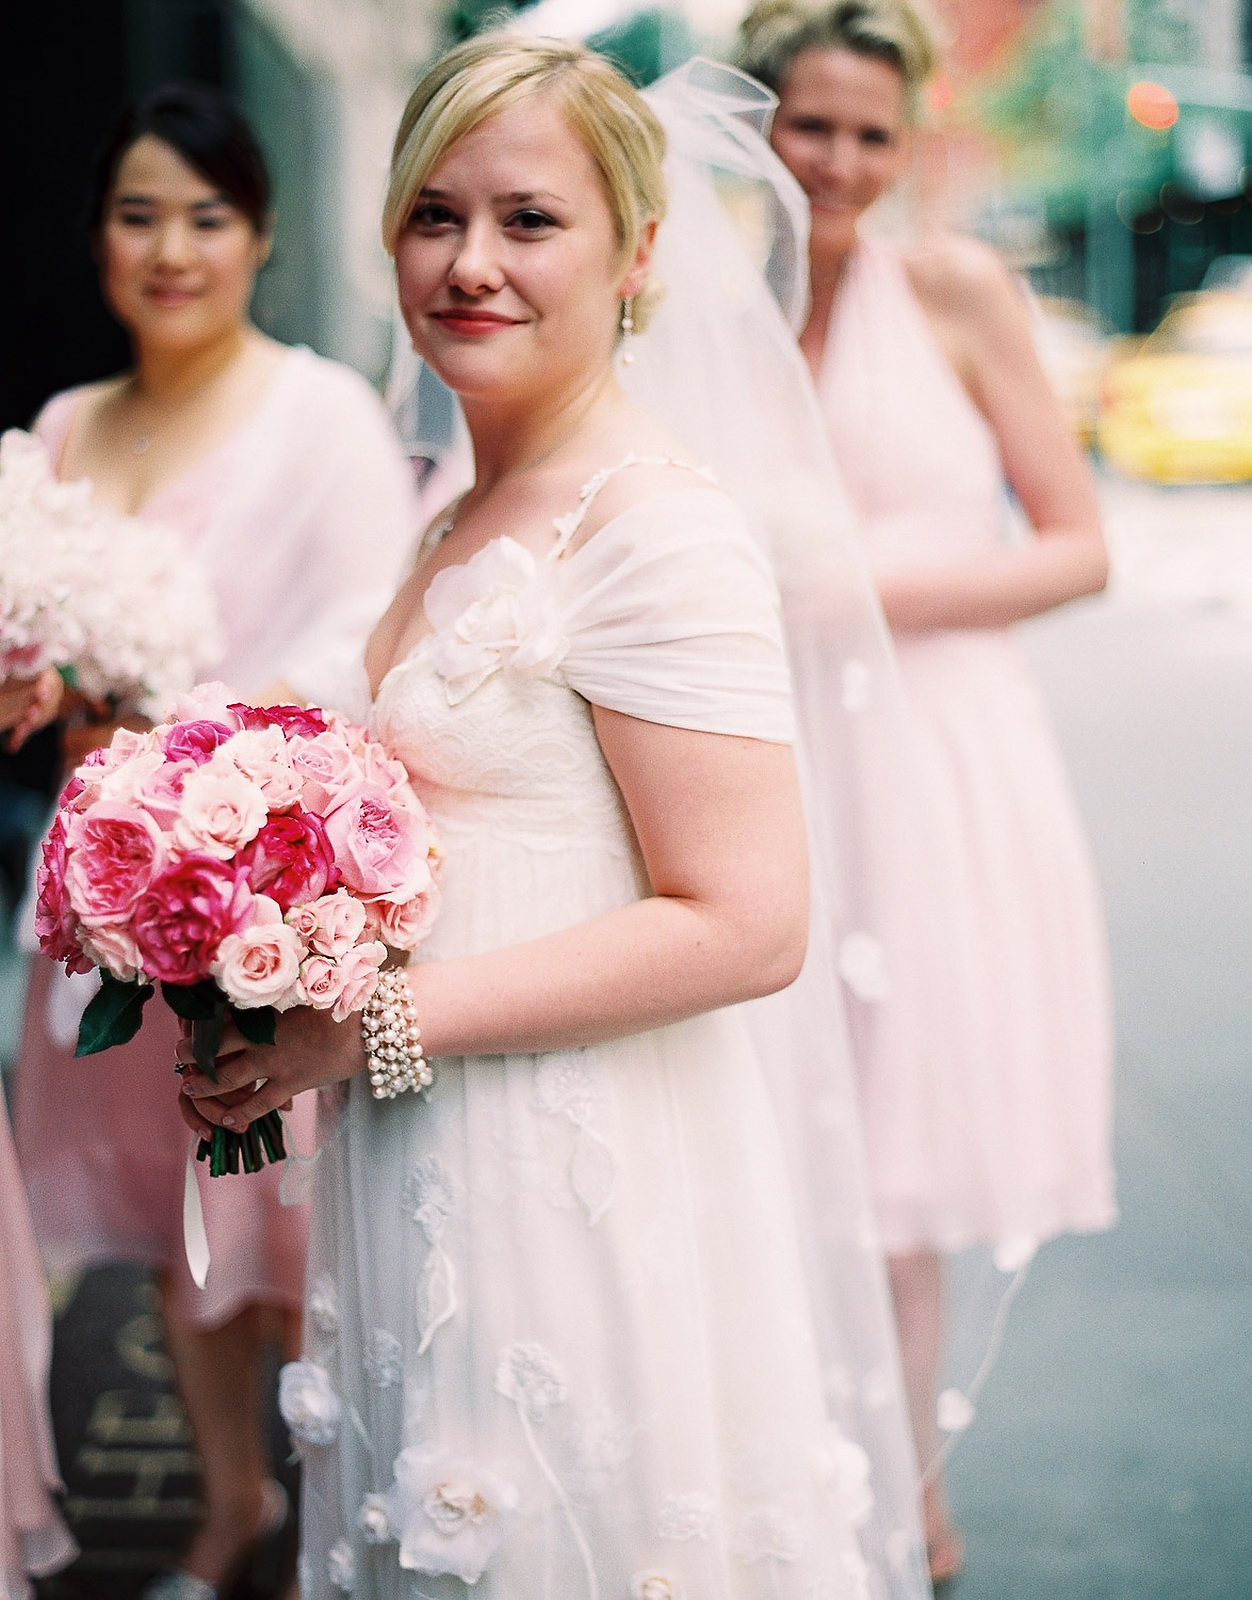 claire pettibone bride and bridesmaids taken by nyc wedding photographer wendy g photography